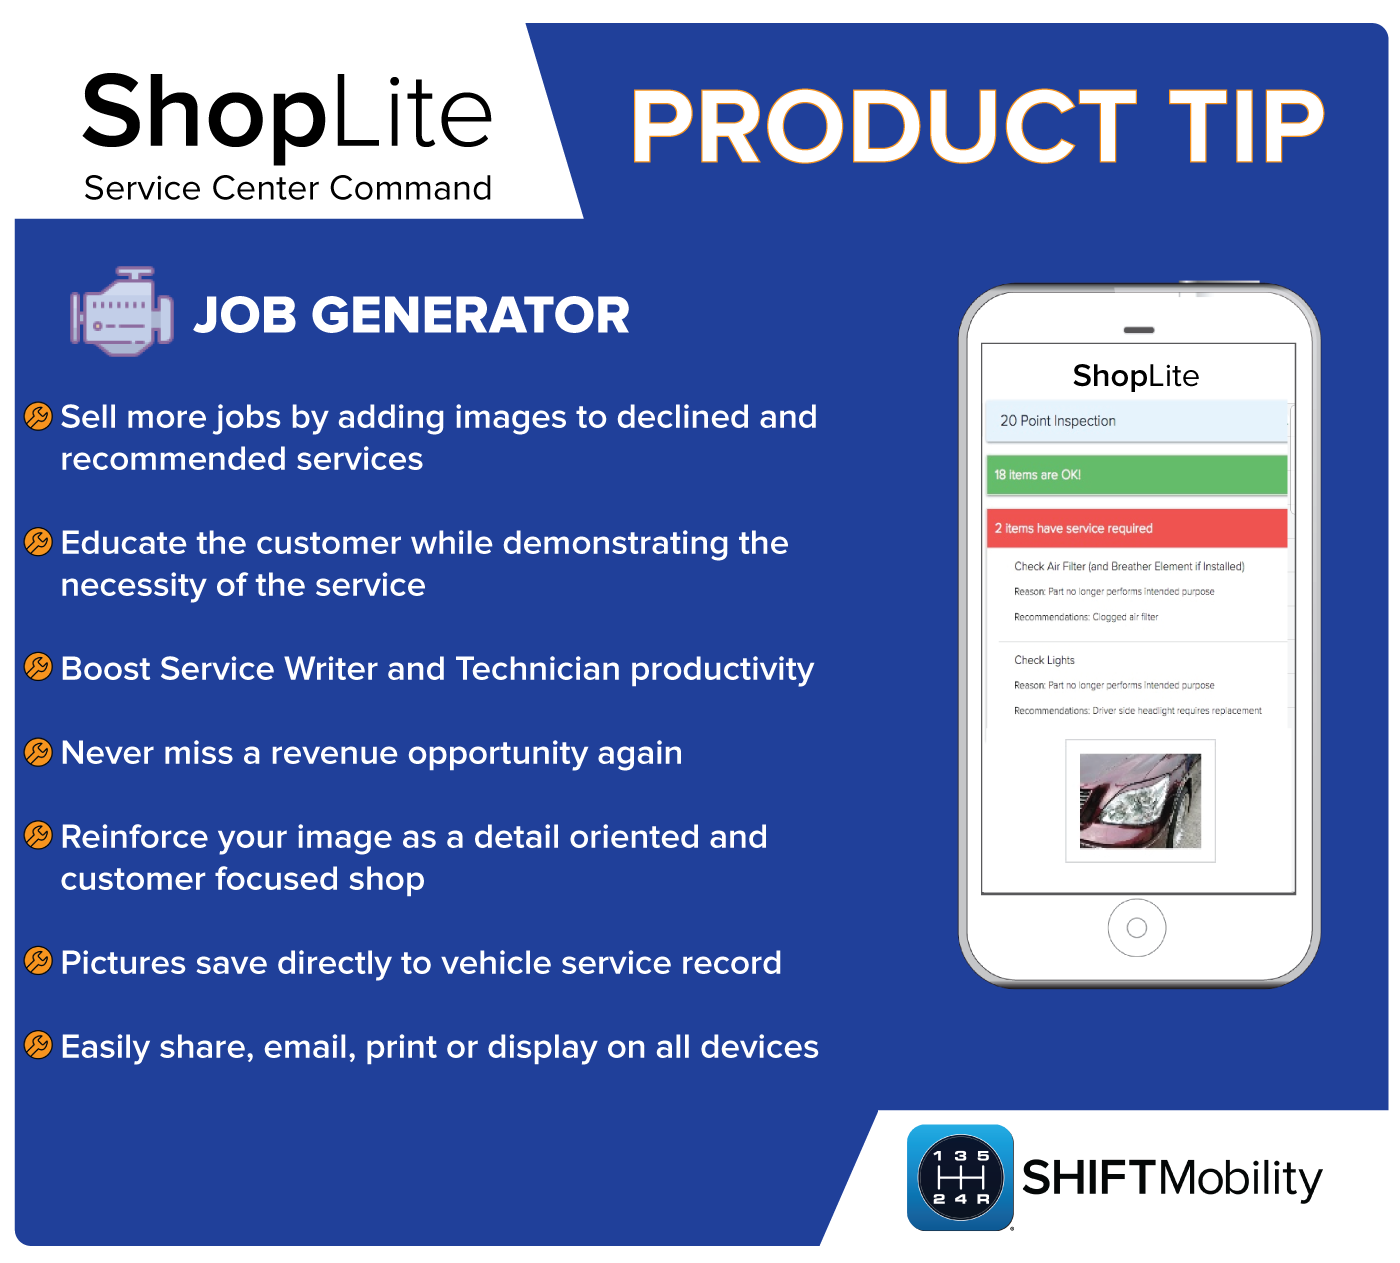 Product tip card job generator